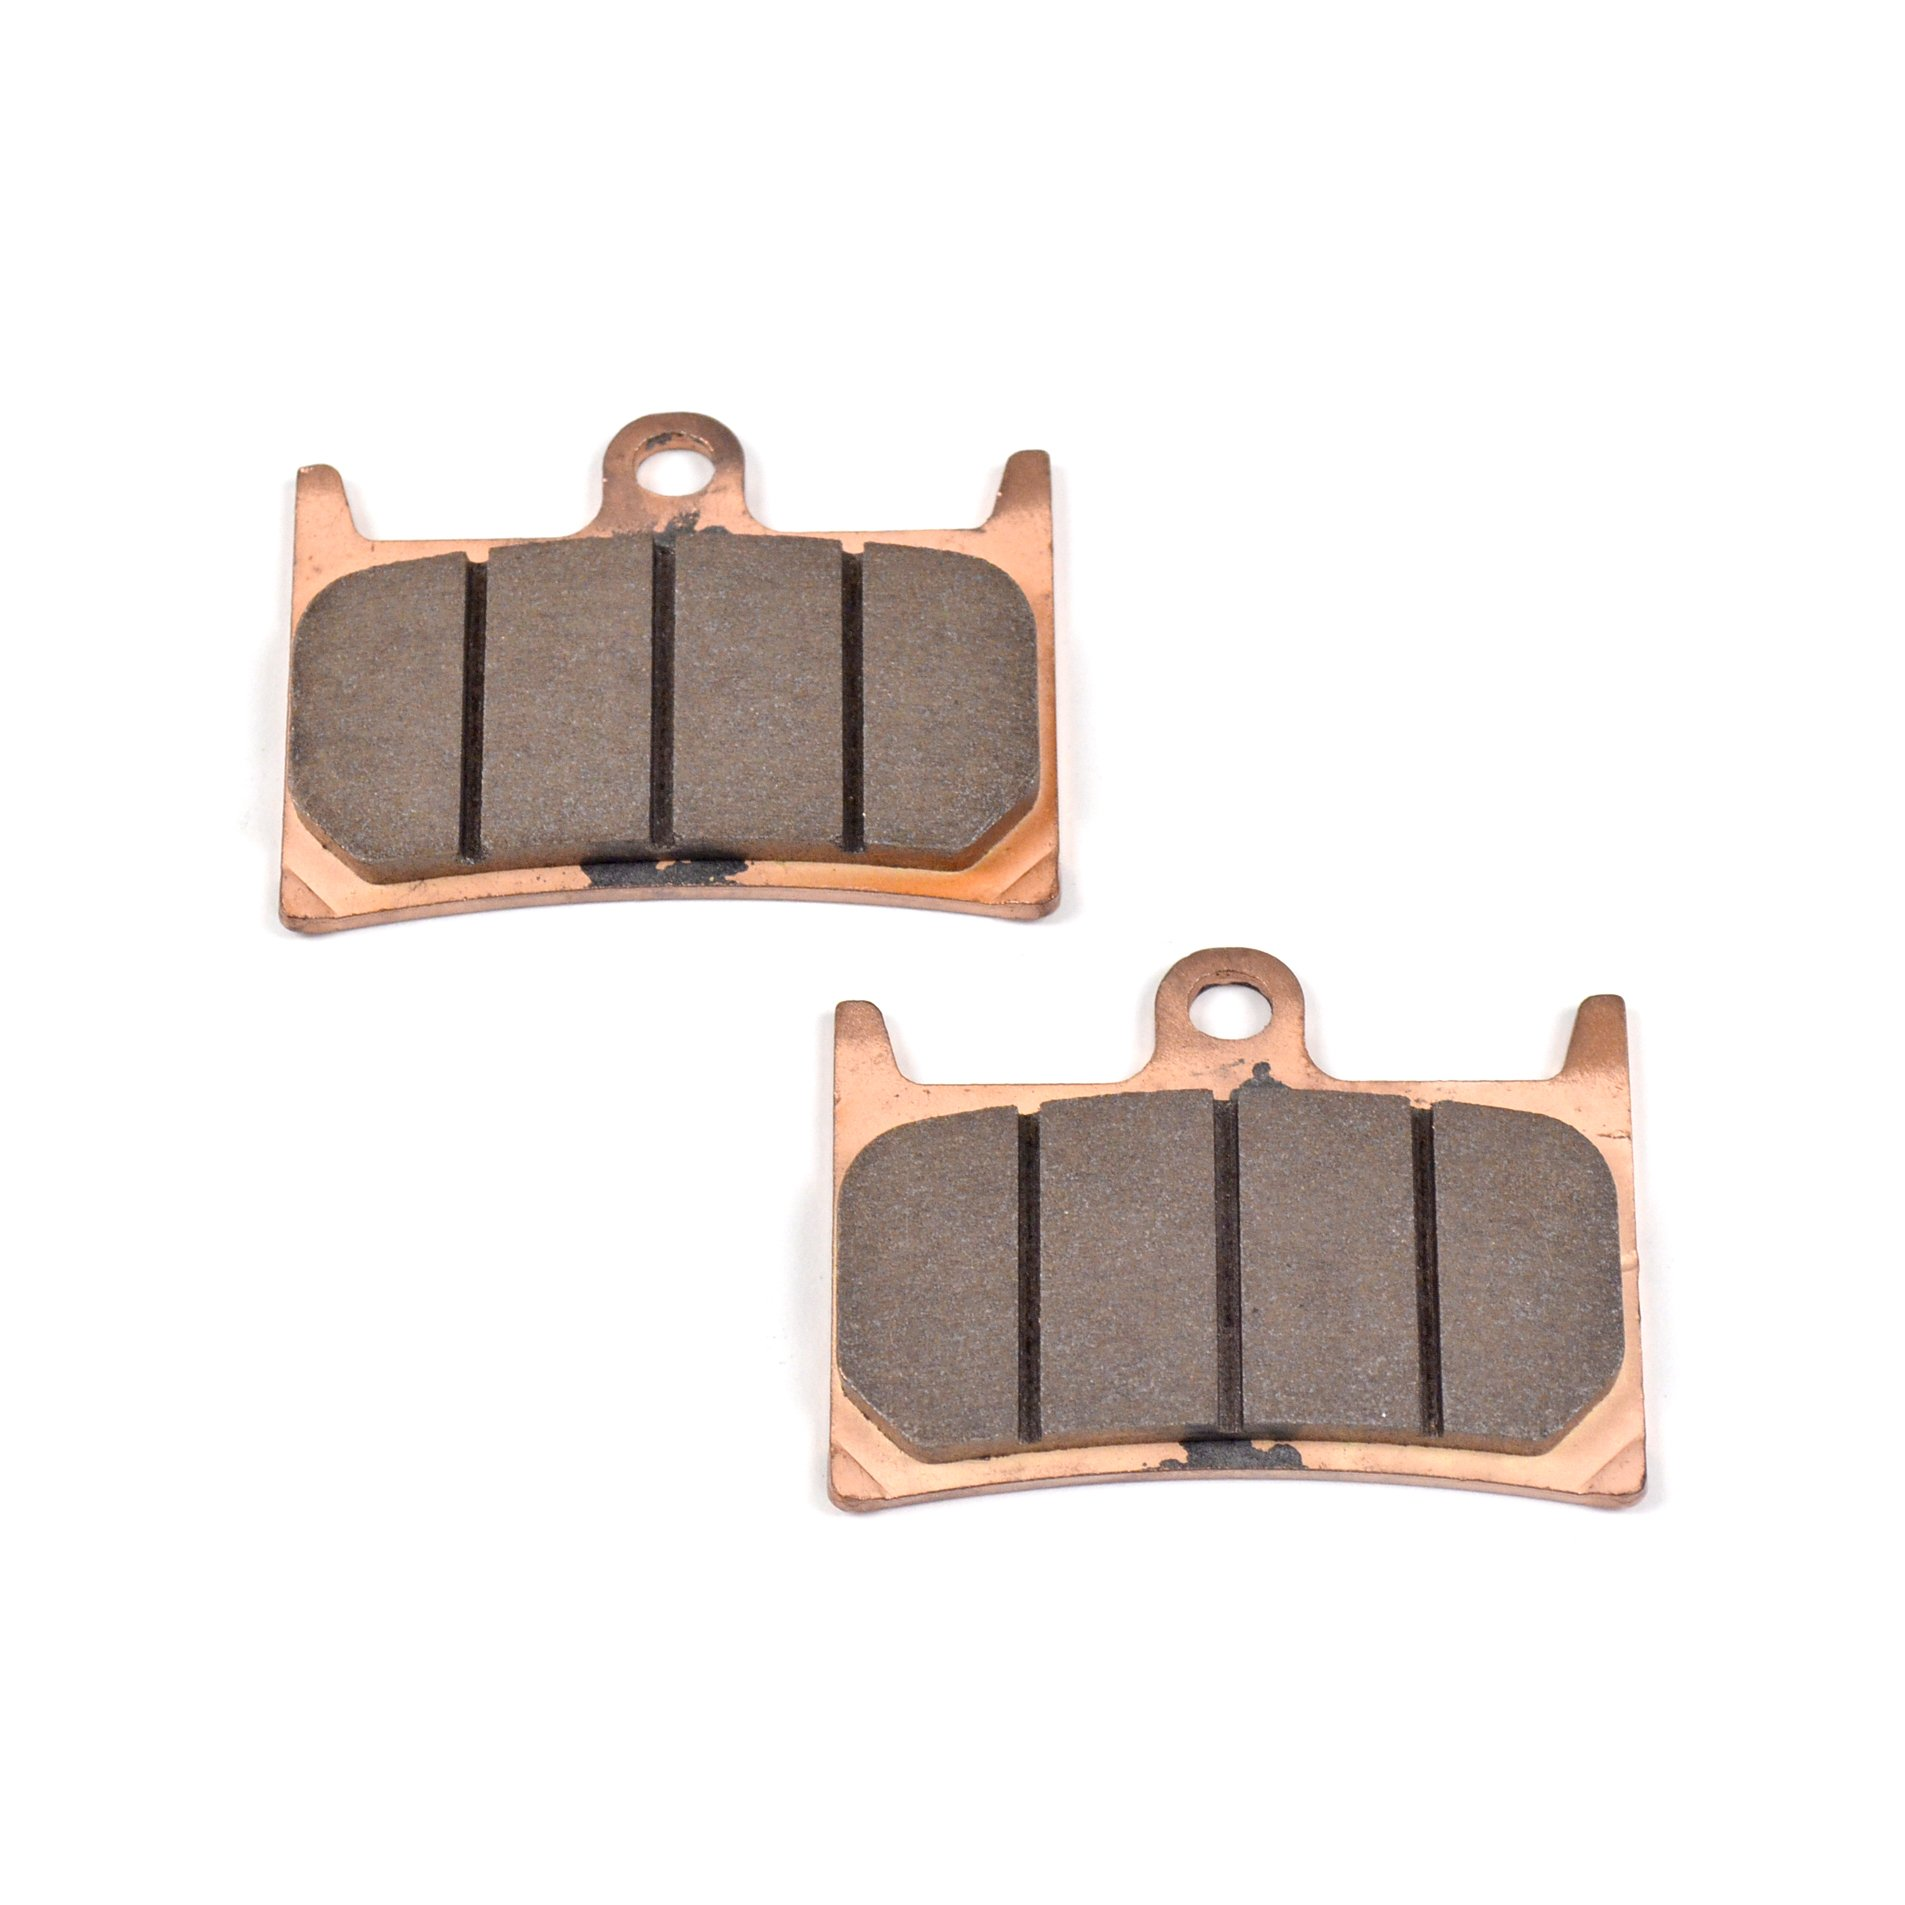 Yamaha YZF-R6 08-14 Front Performance Brake Pads by Niche Cycle Supply